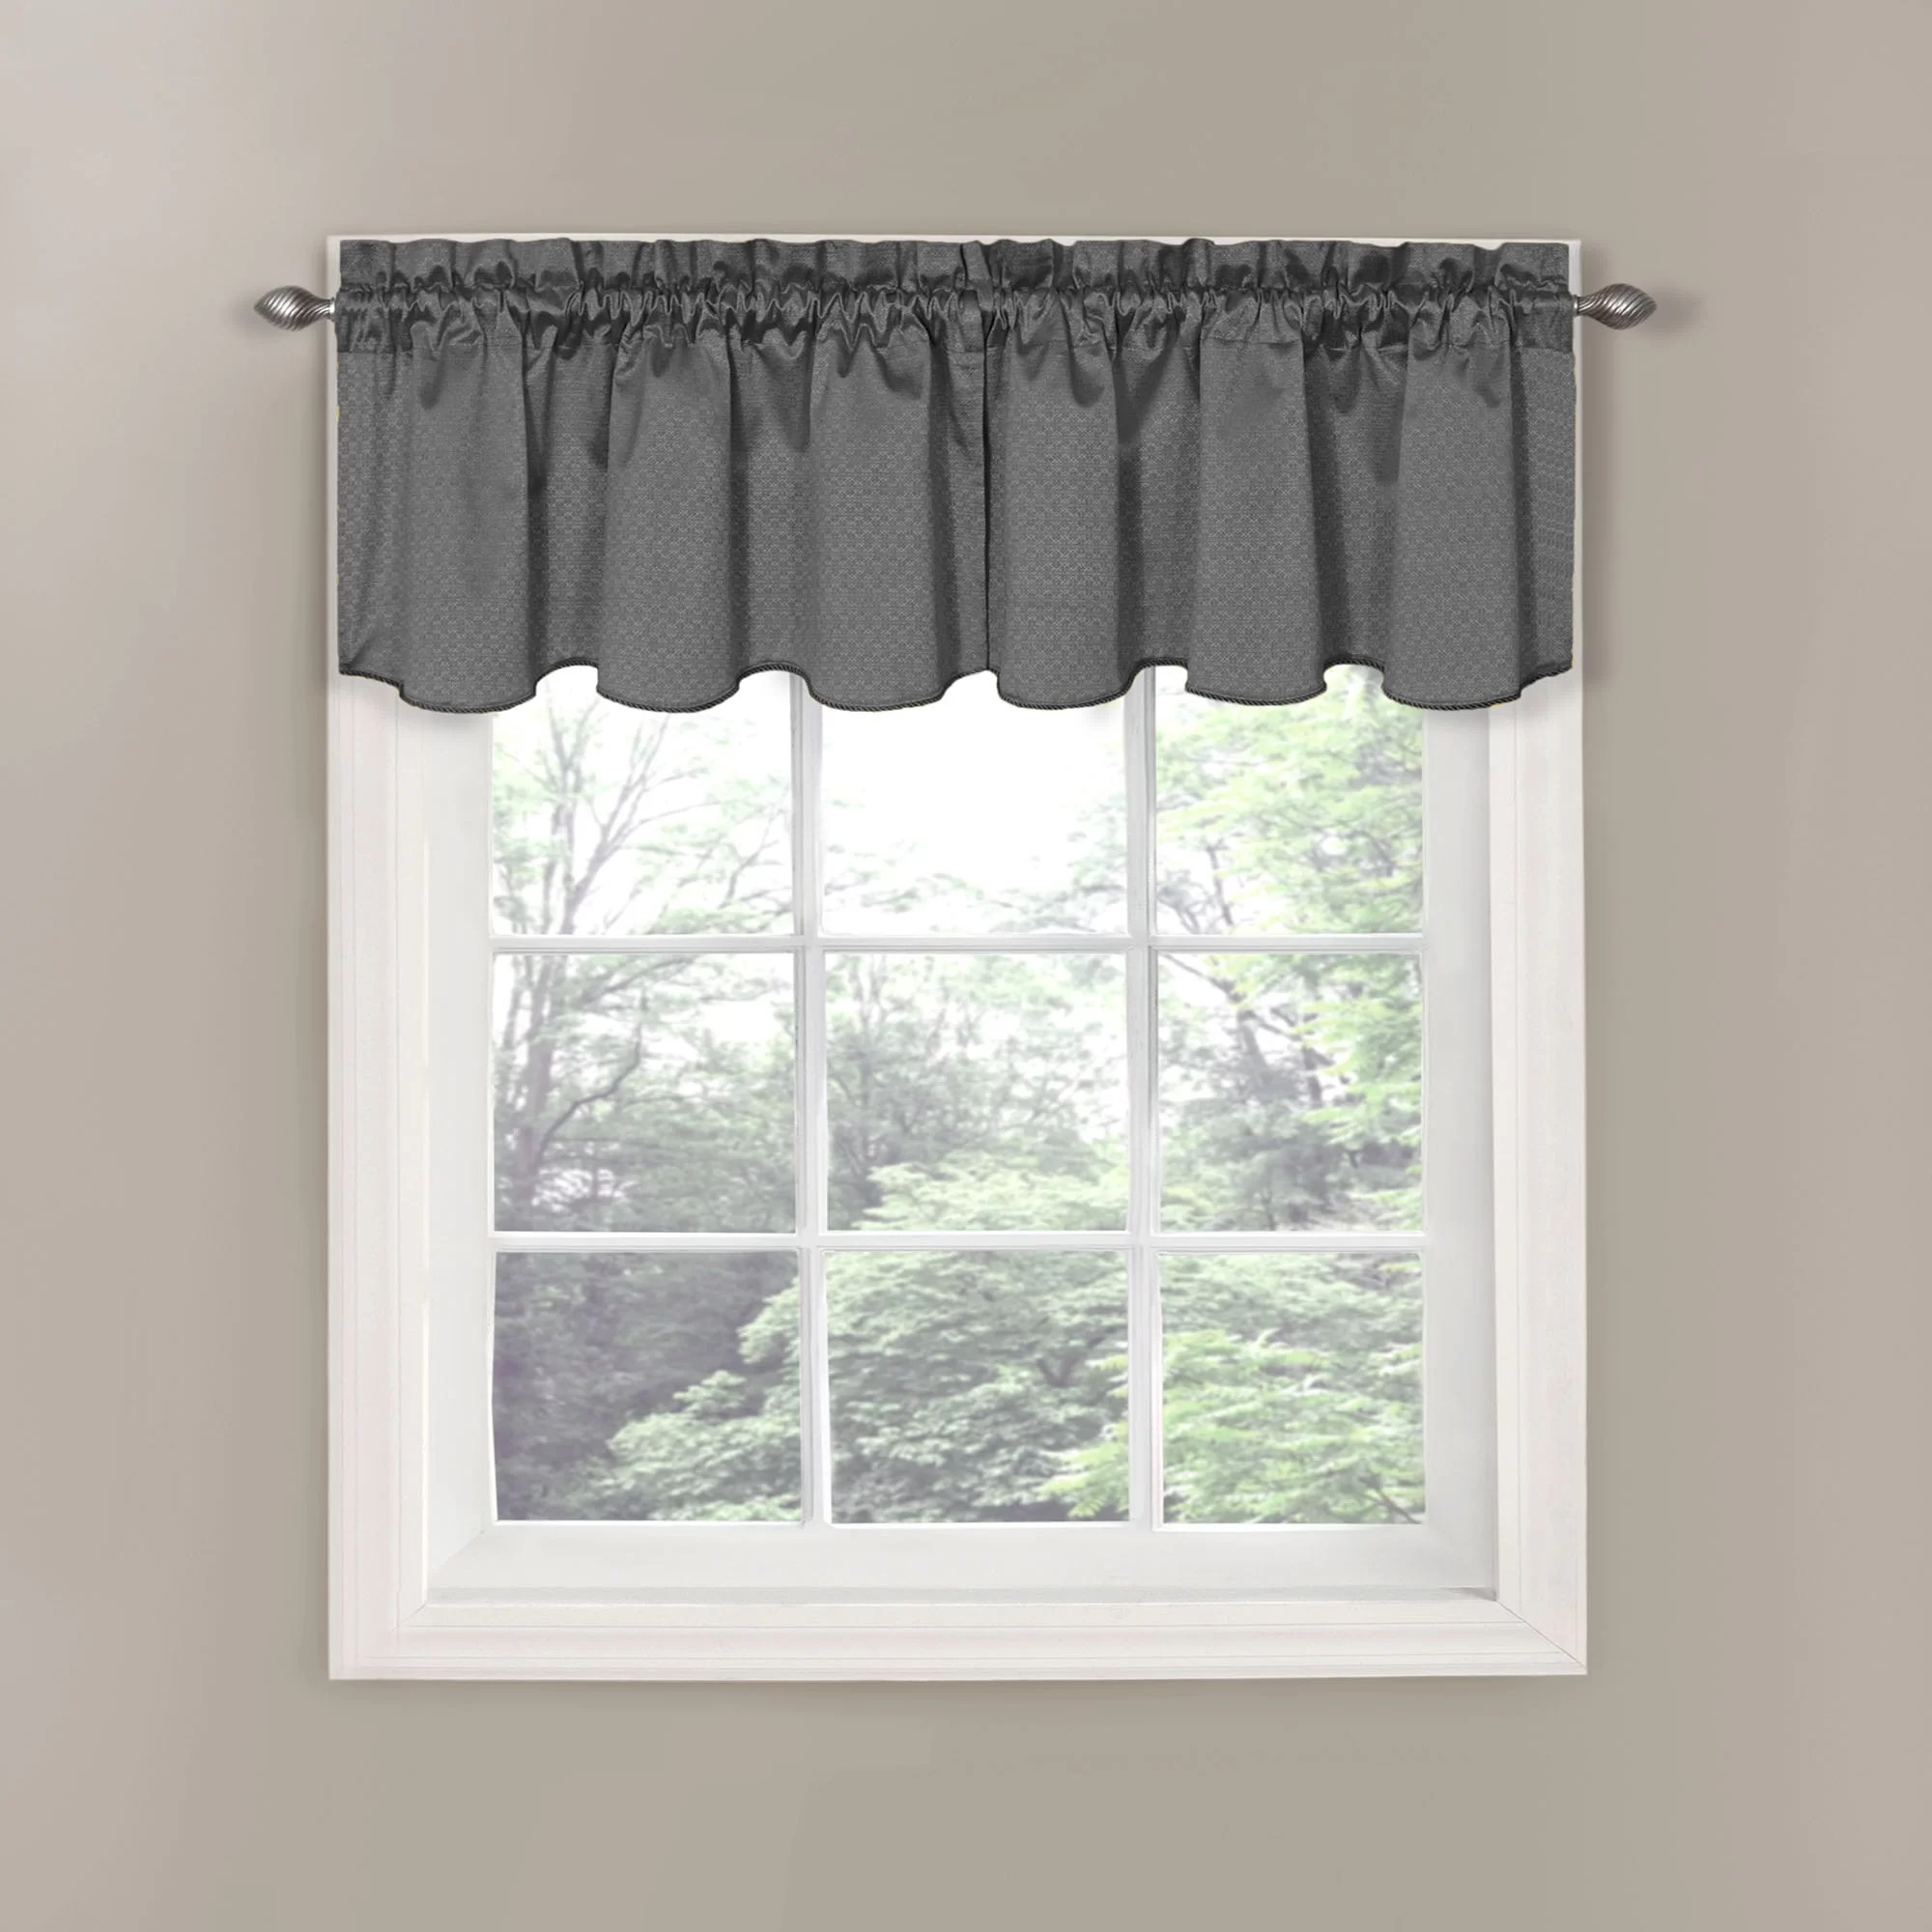 Darby Home Co Valasquez 42 Blackout Window Curtain